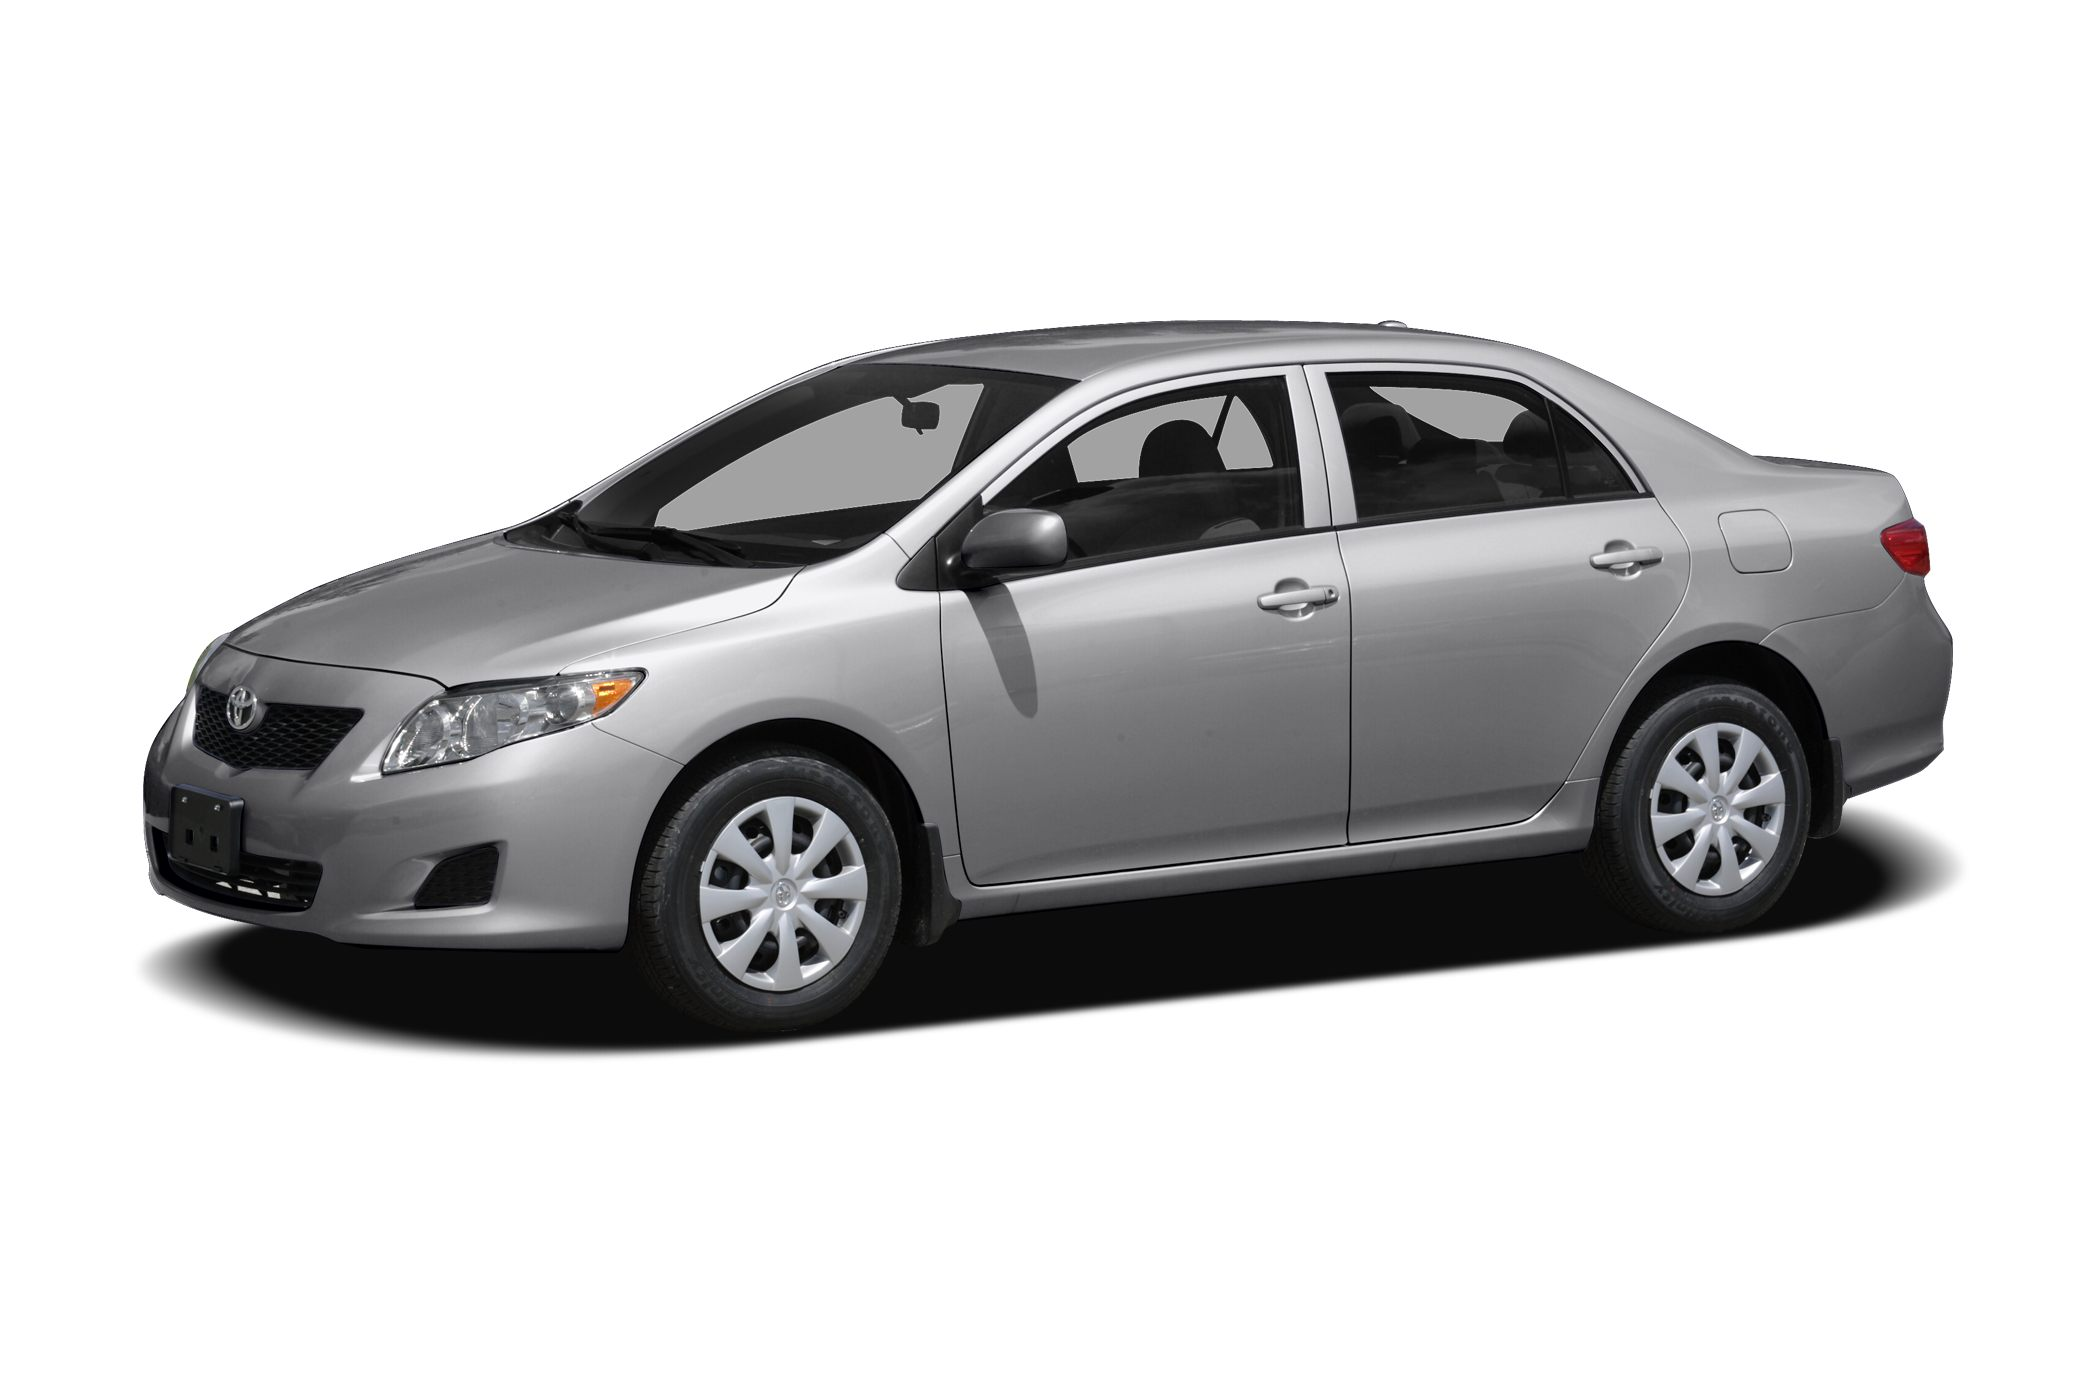 2009 Toyota Corolla Sedan for sale in Prattville for $12,995 with 58,791 miles.